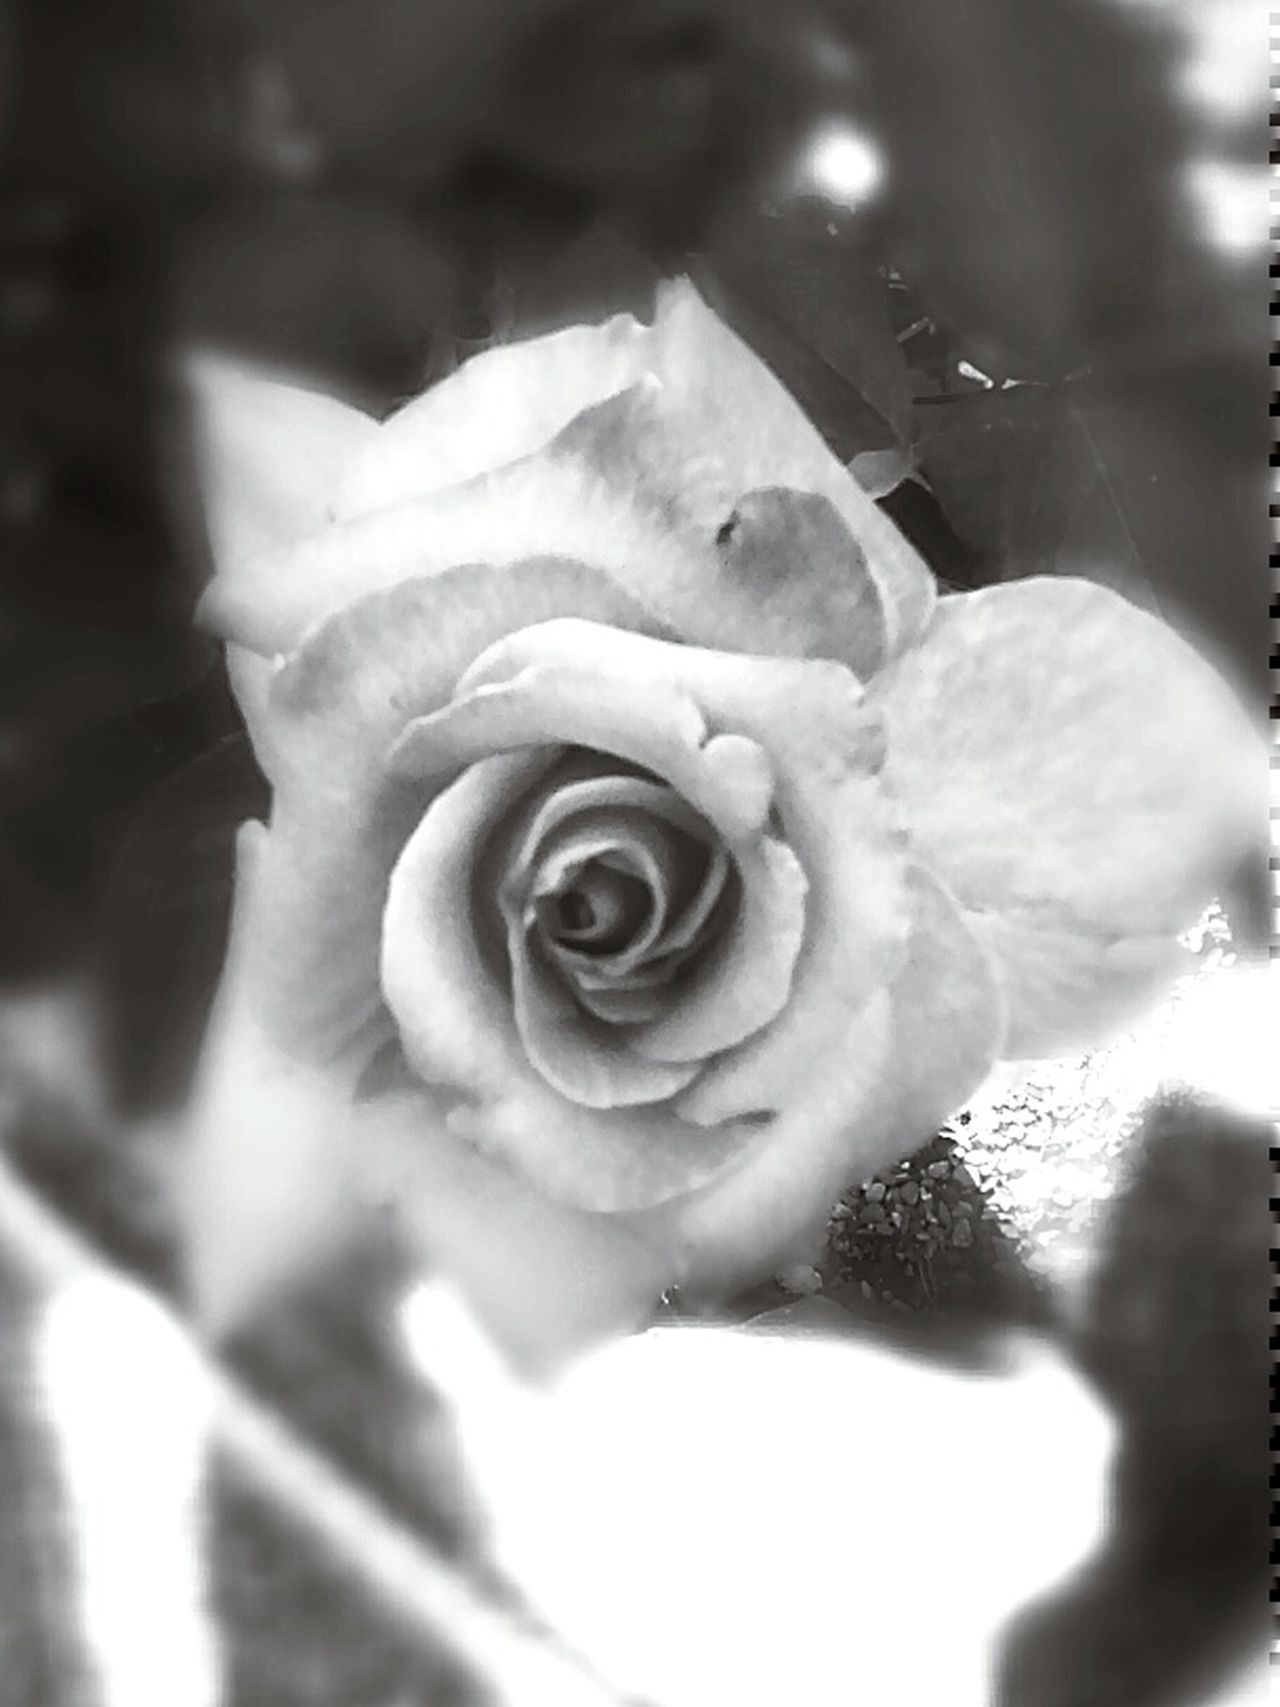 Rose from the shadows. Noir Et Blanc Black And White Photography Svartvitt Black And White Schwarzweiß Fast Through A Slow-motion Landscape Capturing Beauty Black And White Collection  Rosé Roses